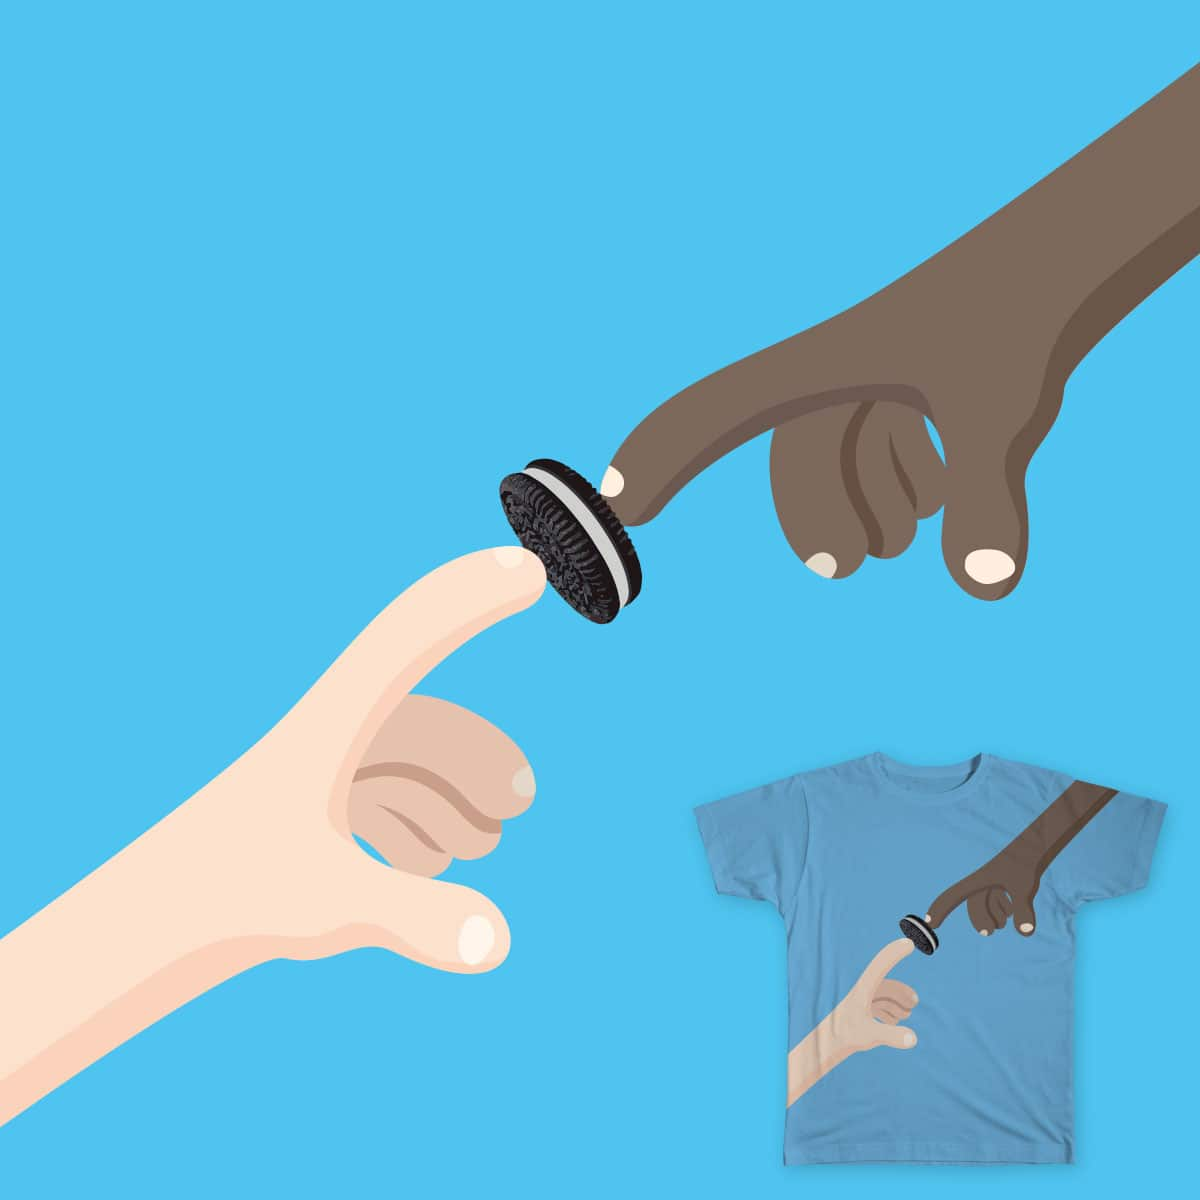 Creation of a cookie  by Anas.Alhakim on Threadless